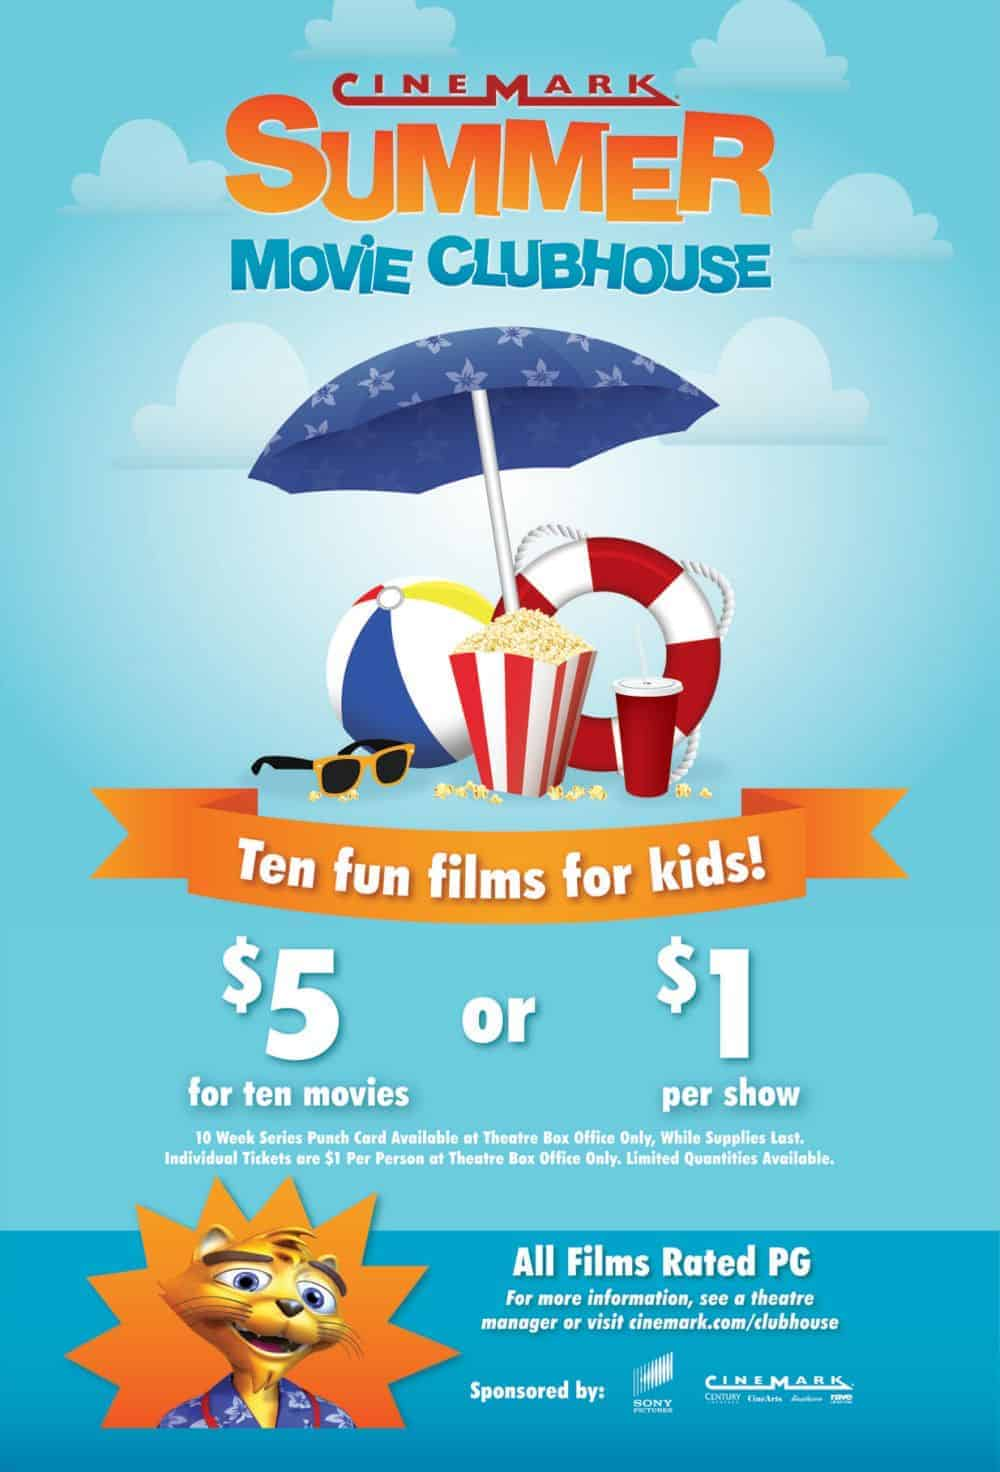 Summer Movie Clubhouse at Cinemark: 10 kid flicks for $5 - Living On